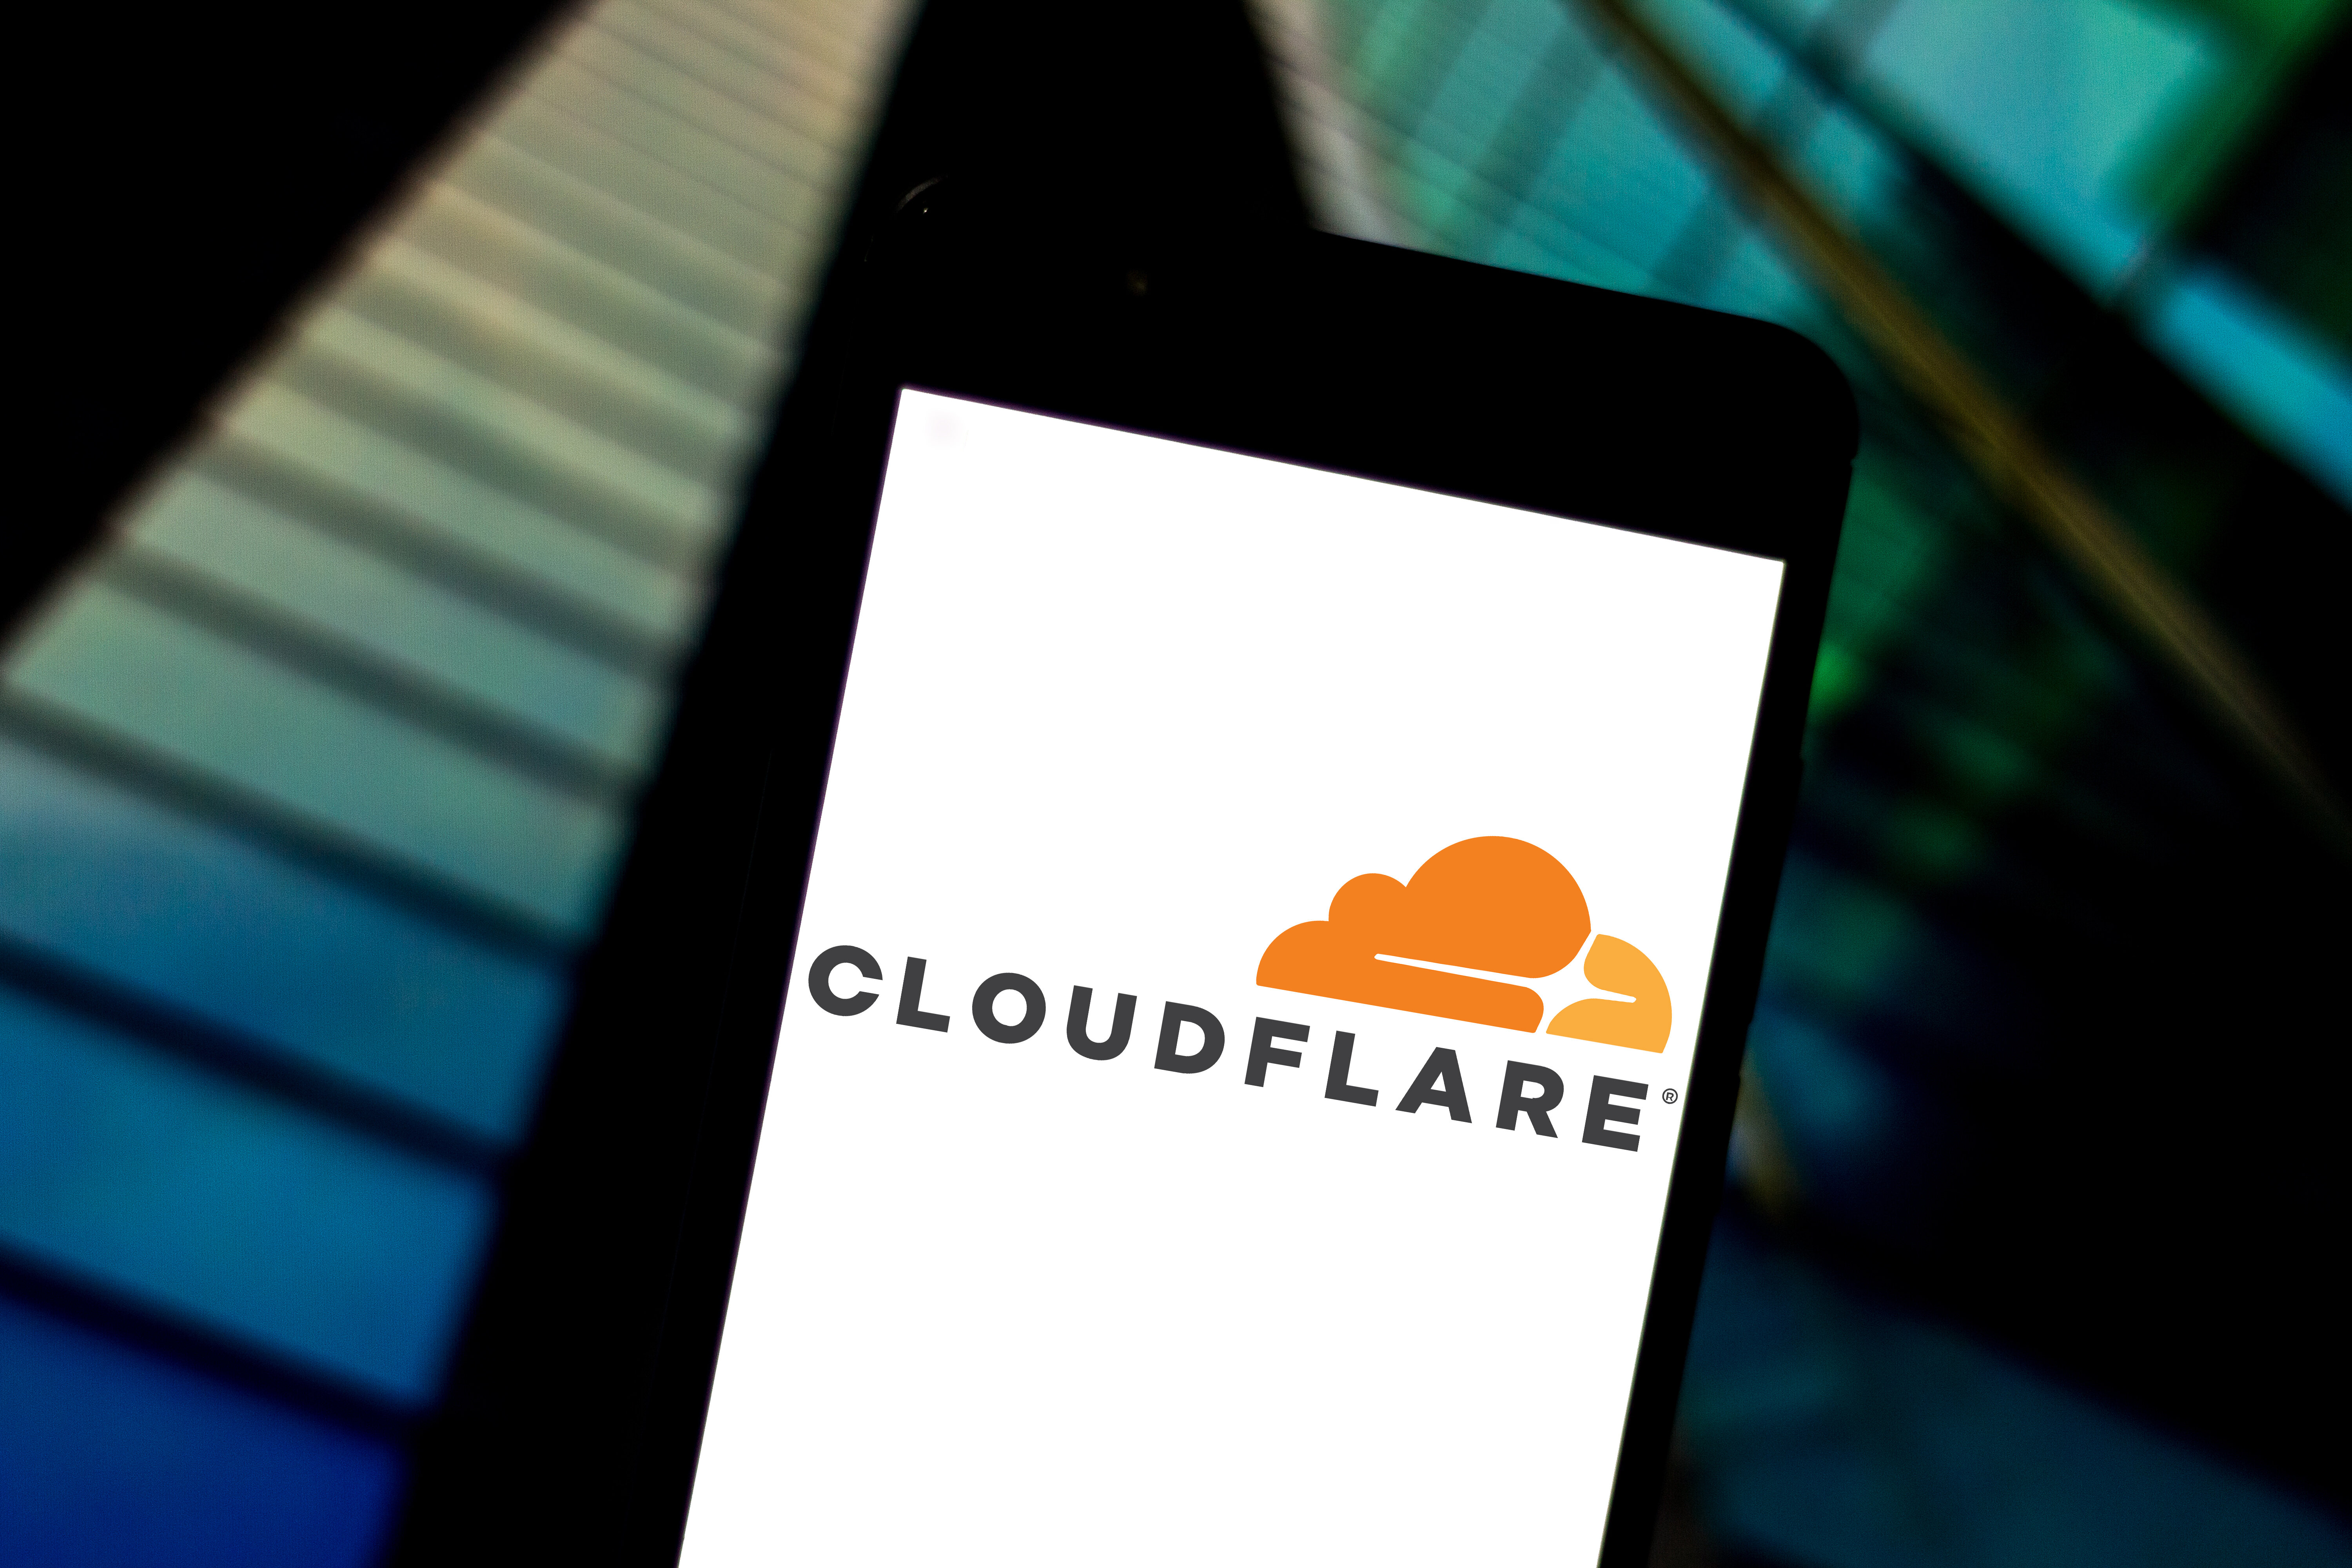 RoboMarkets Introduced Cloudflare Inc. Stocks